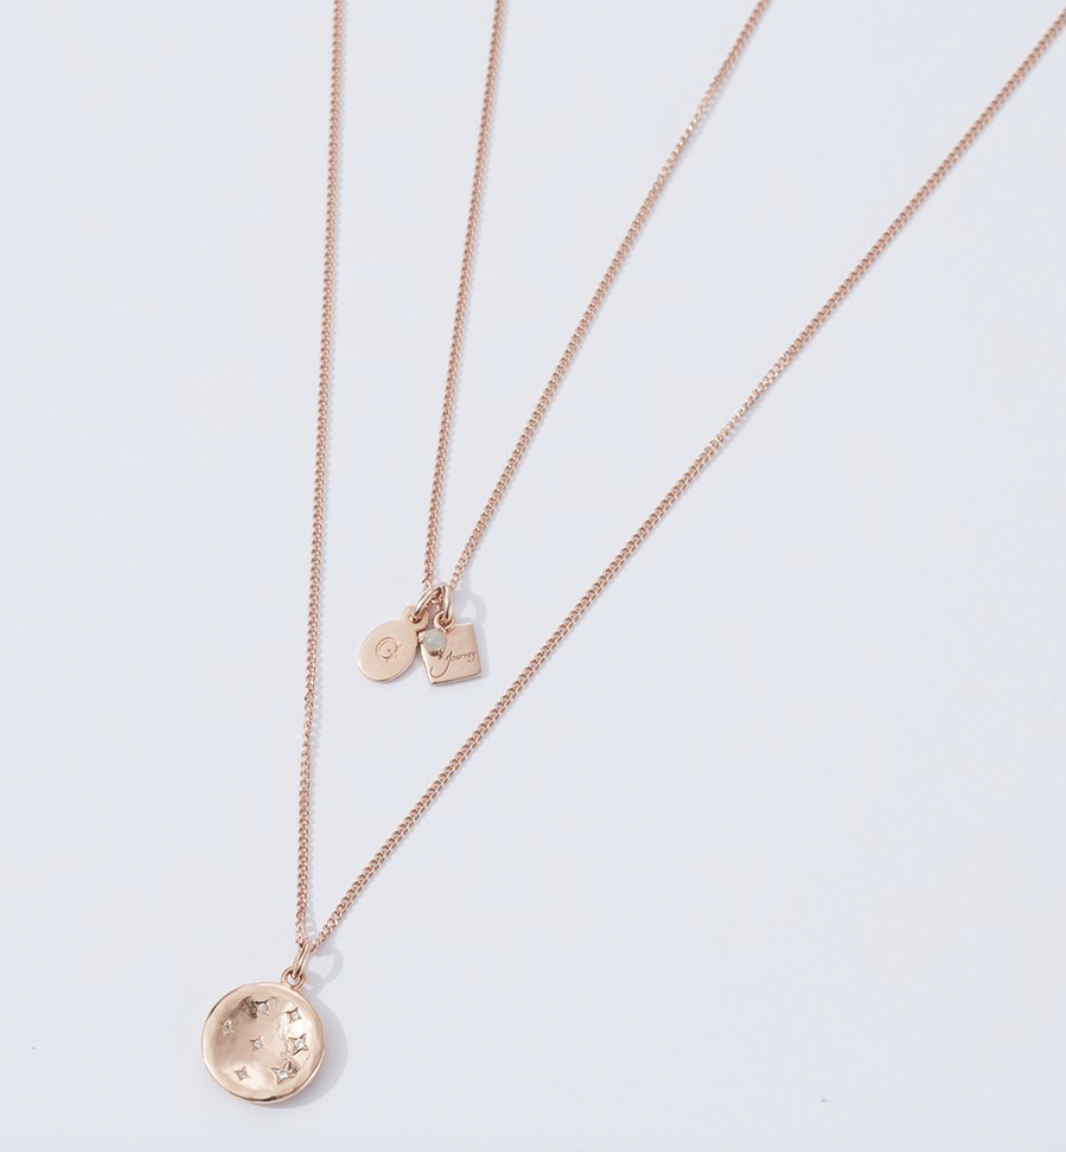 Rose gold chain $68 Also comes in sterling silver $44 and gold $48 Find them  here.